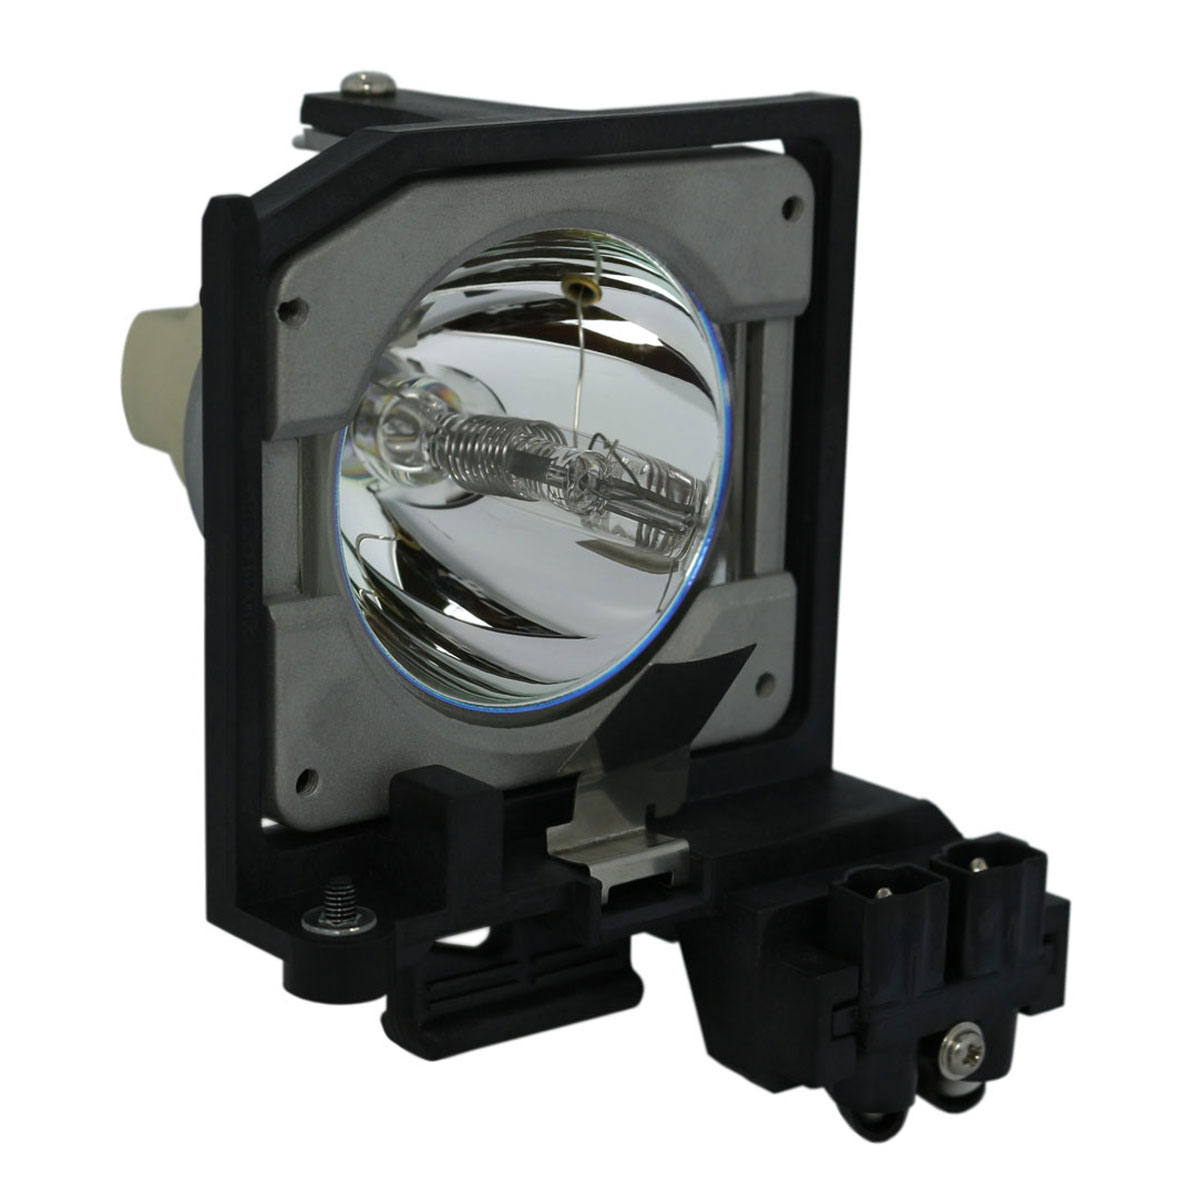 Lutema Economy Bulb for 3M Digital Media System 815 Projector (Lamp with Housing) - image 2 of 5